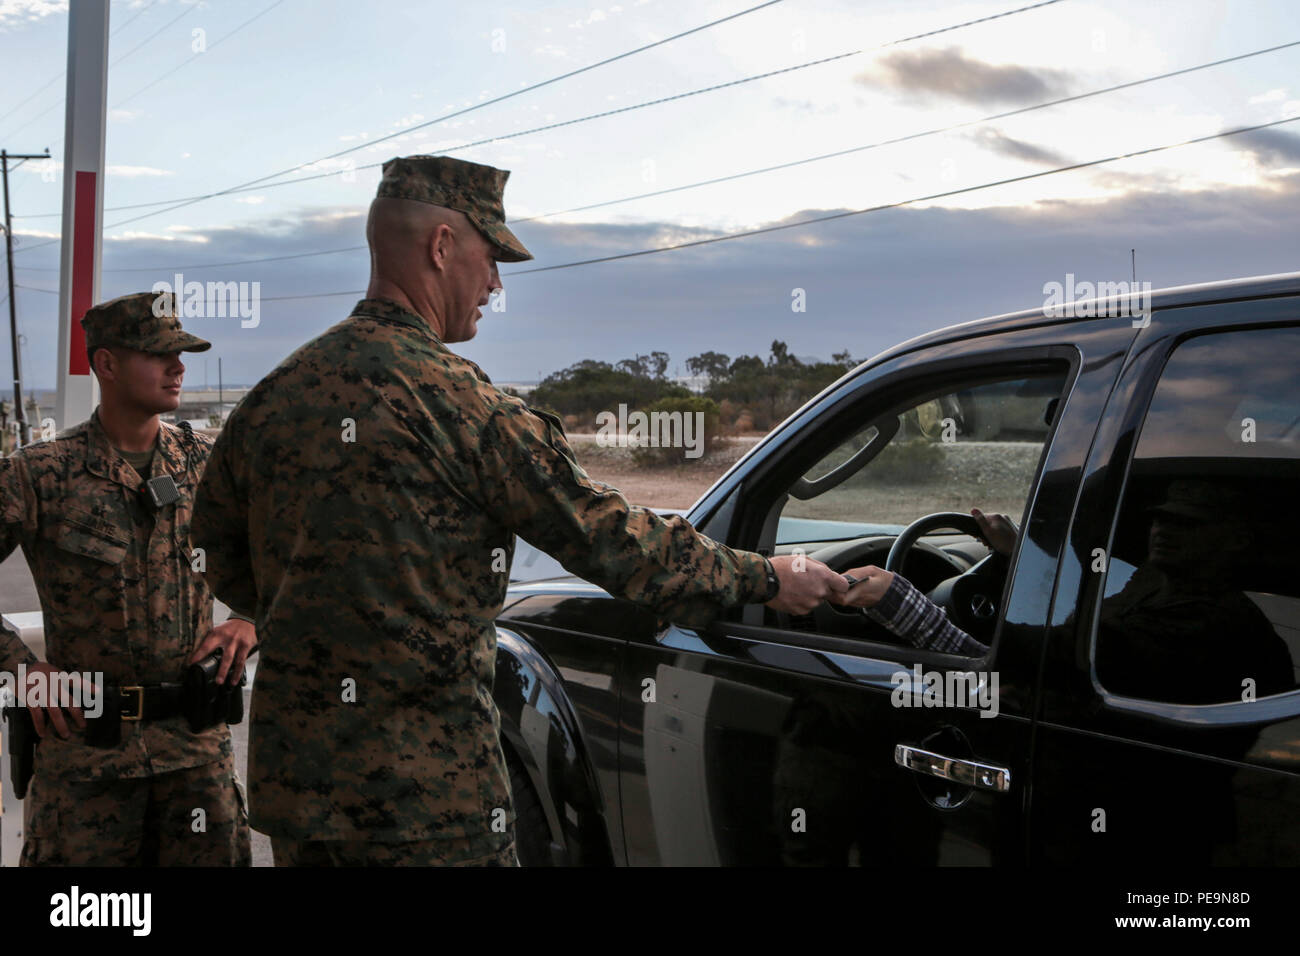 U.S. Marine Corps Sgt. Maj. Patrick Kimble, Sergeant Major, 3d Marine Aircraft Wing (3d MAW), greets a service member at an entry point of Marine Corps Air Station Miramar, San Diego, Calif., Nov. 25, 2015. Maj. Gen. Michael A Rocco, Commanding General, 3d MAW, Brig. Gen. Kevin Iiams, Assistant Wing Commander, 3d MAW, Sgt. Maj. Patrick Kimble, Sergeant Major, 3d MAW, and U.S. Navy Command Master Chief Petty Officer Frank Dominguez, Command Master Chief, 3d MAW, wished a happy holiday to service members and Department of Defense employees as they entered the base. (U.S. Marine Corps photo by Cp - Stock Image